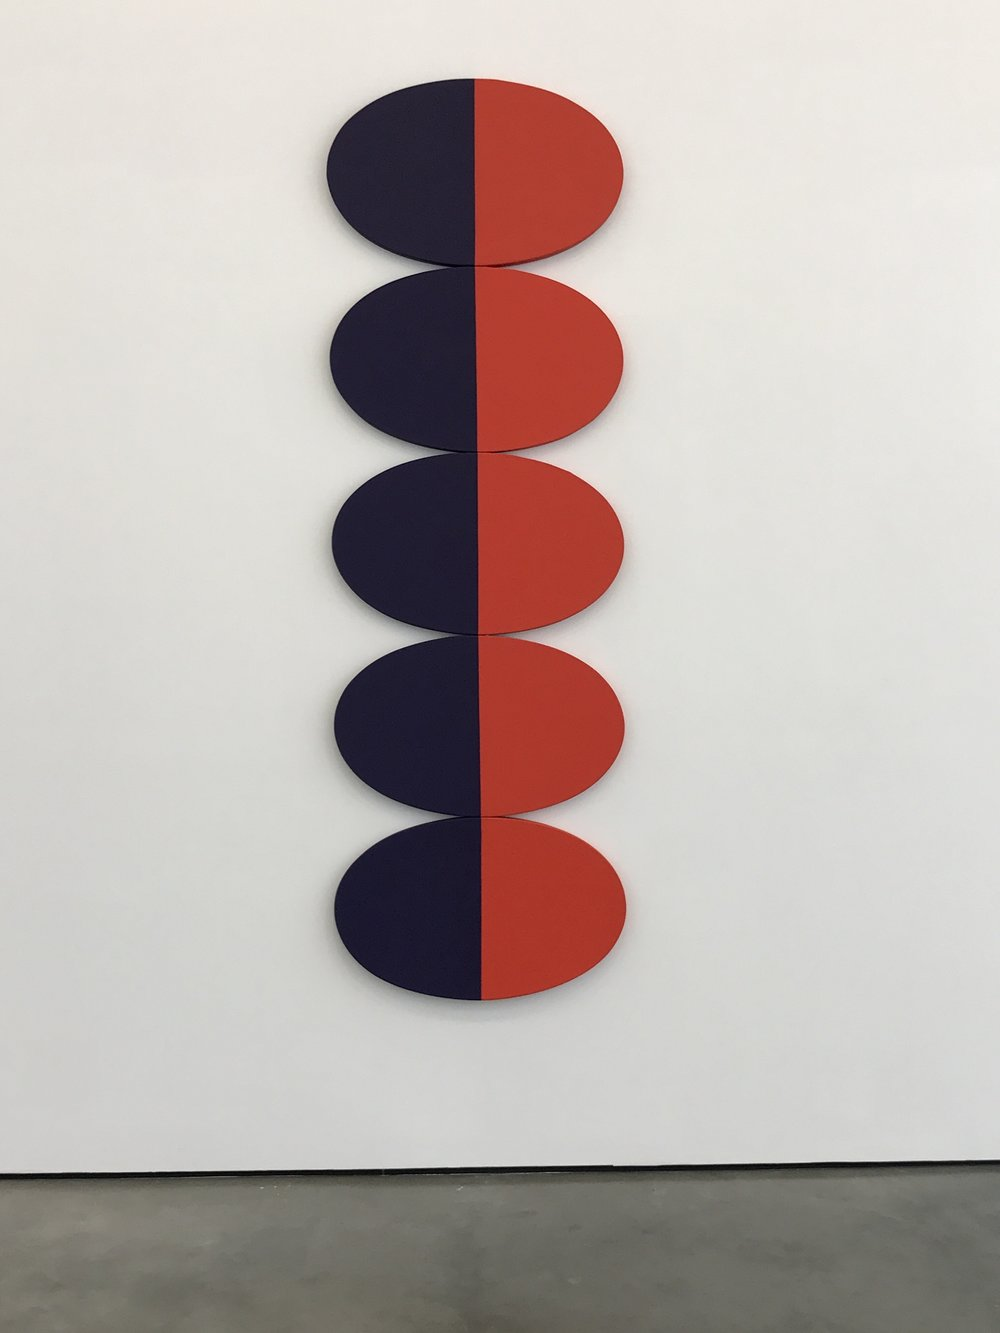 Leon Polk Smith at Lisson Gallery